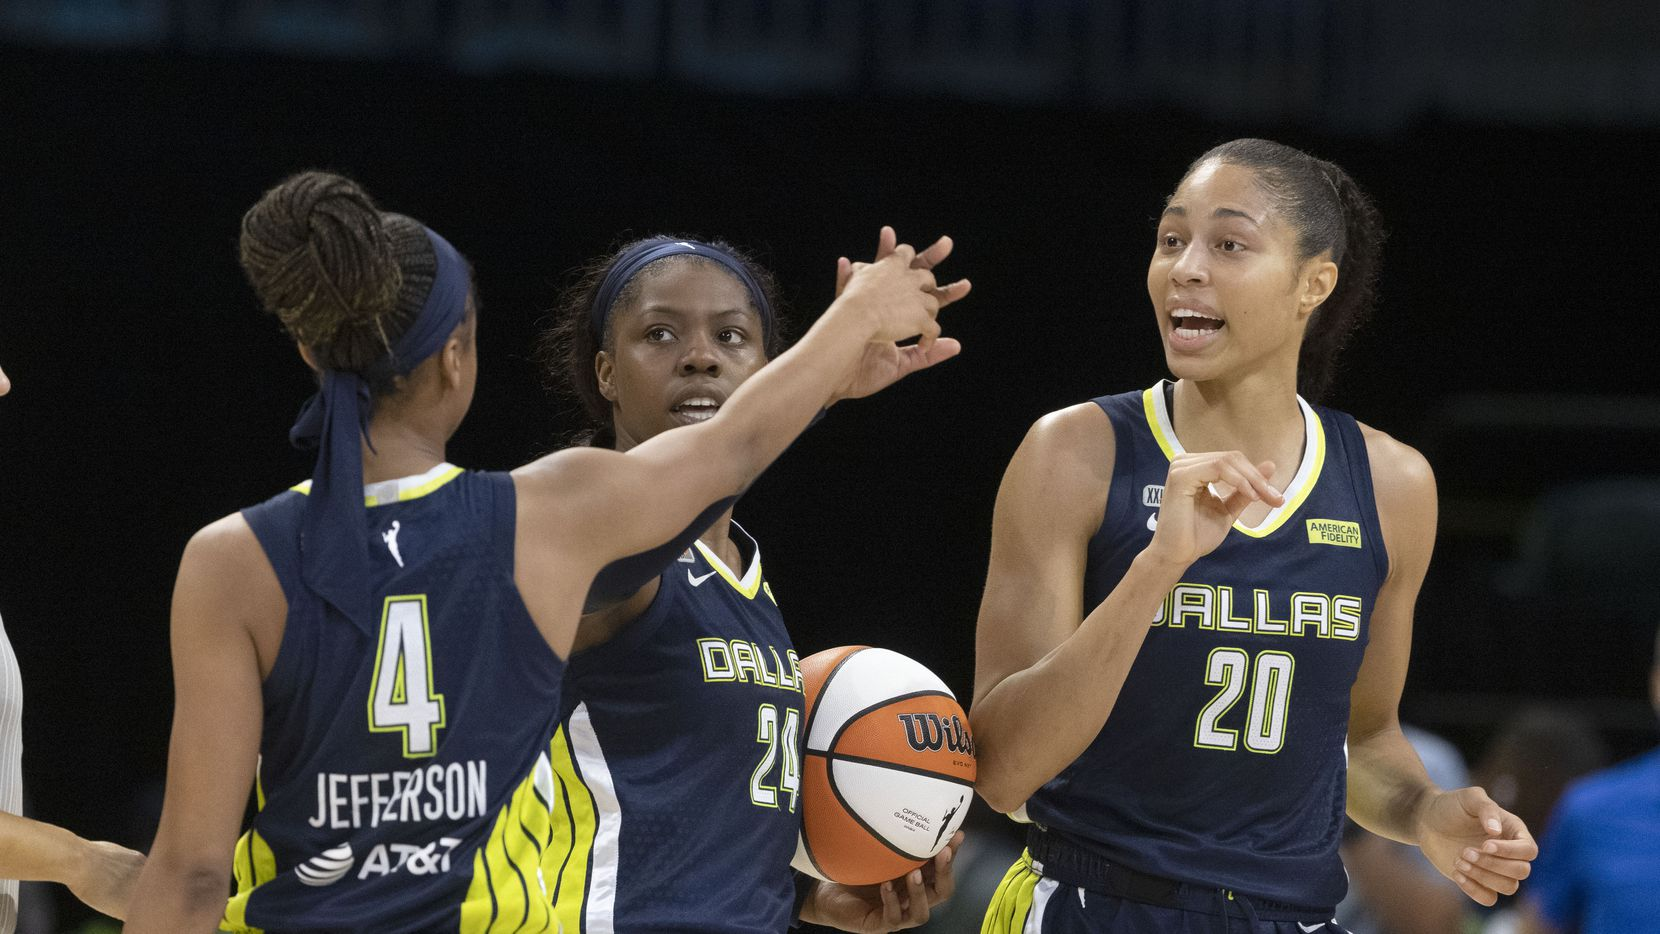 Dallas Wings guard Moriah Jefferson (4) guard Arike Ogunbowale (24) and forward Isabelle Harrison (20) celebrate as the defeated the Atlanta Dream during their WNBA basketball game in Arlington, Texas on Sept. 2, 2021. Dallas won 72-68.